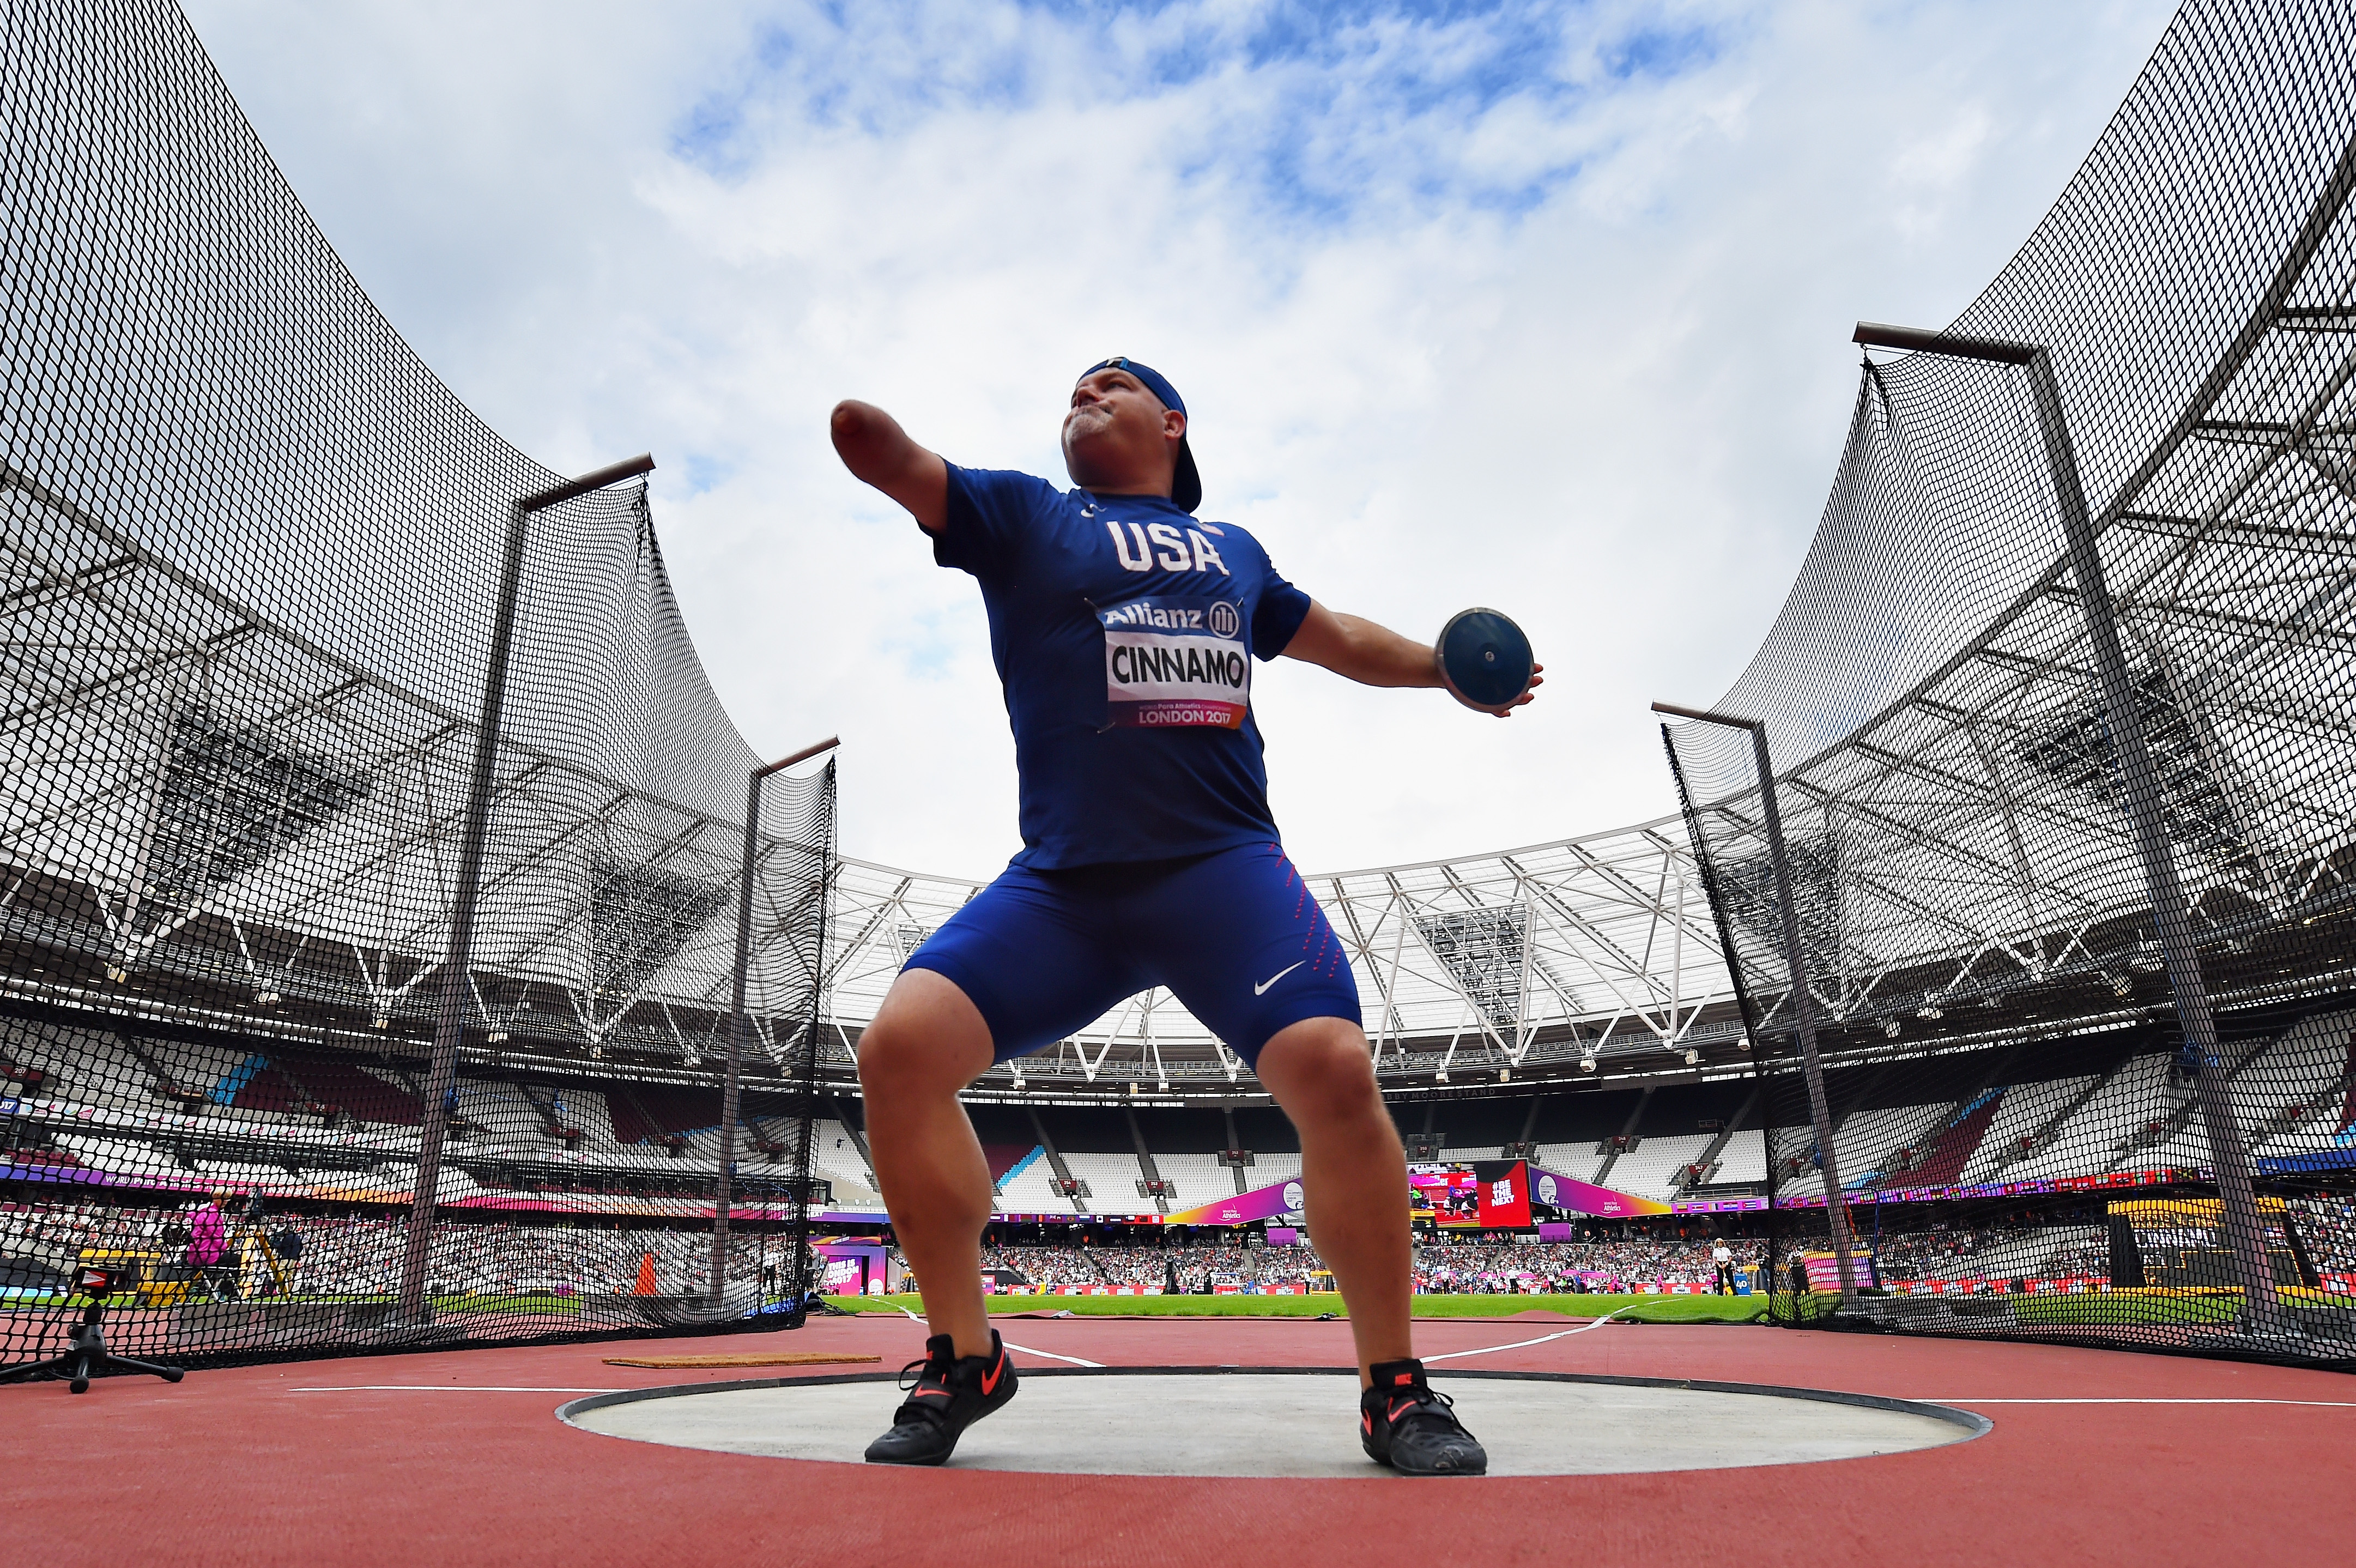 Joshua Cinnamo of USA competes in the Mens discus throw F46 final during day ten of the IPC World ParaAthletics Championships 2017 at London Stadium on July 23, 2017 in London, England.